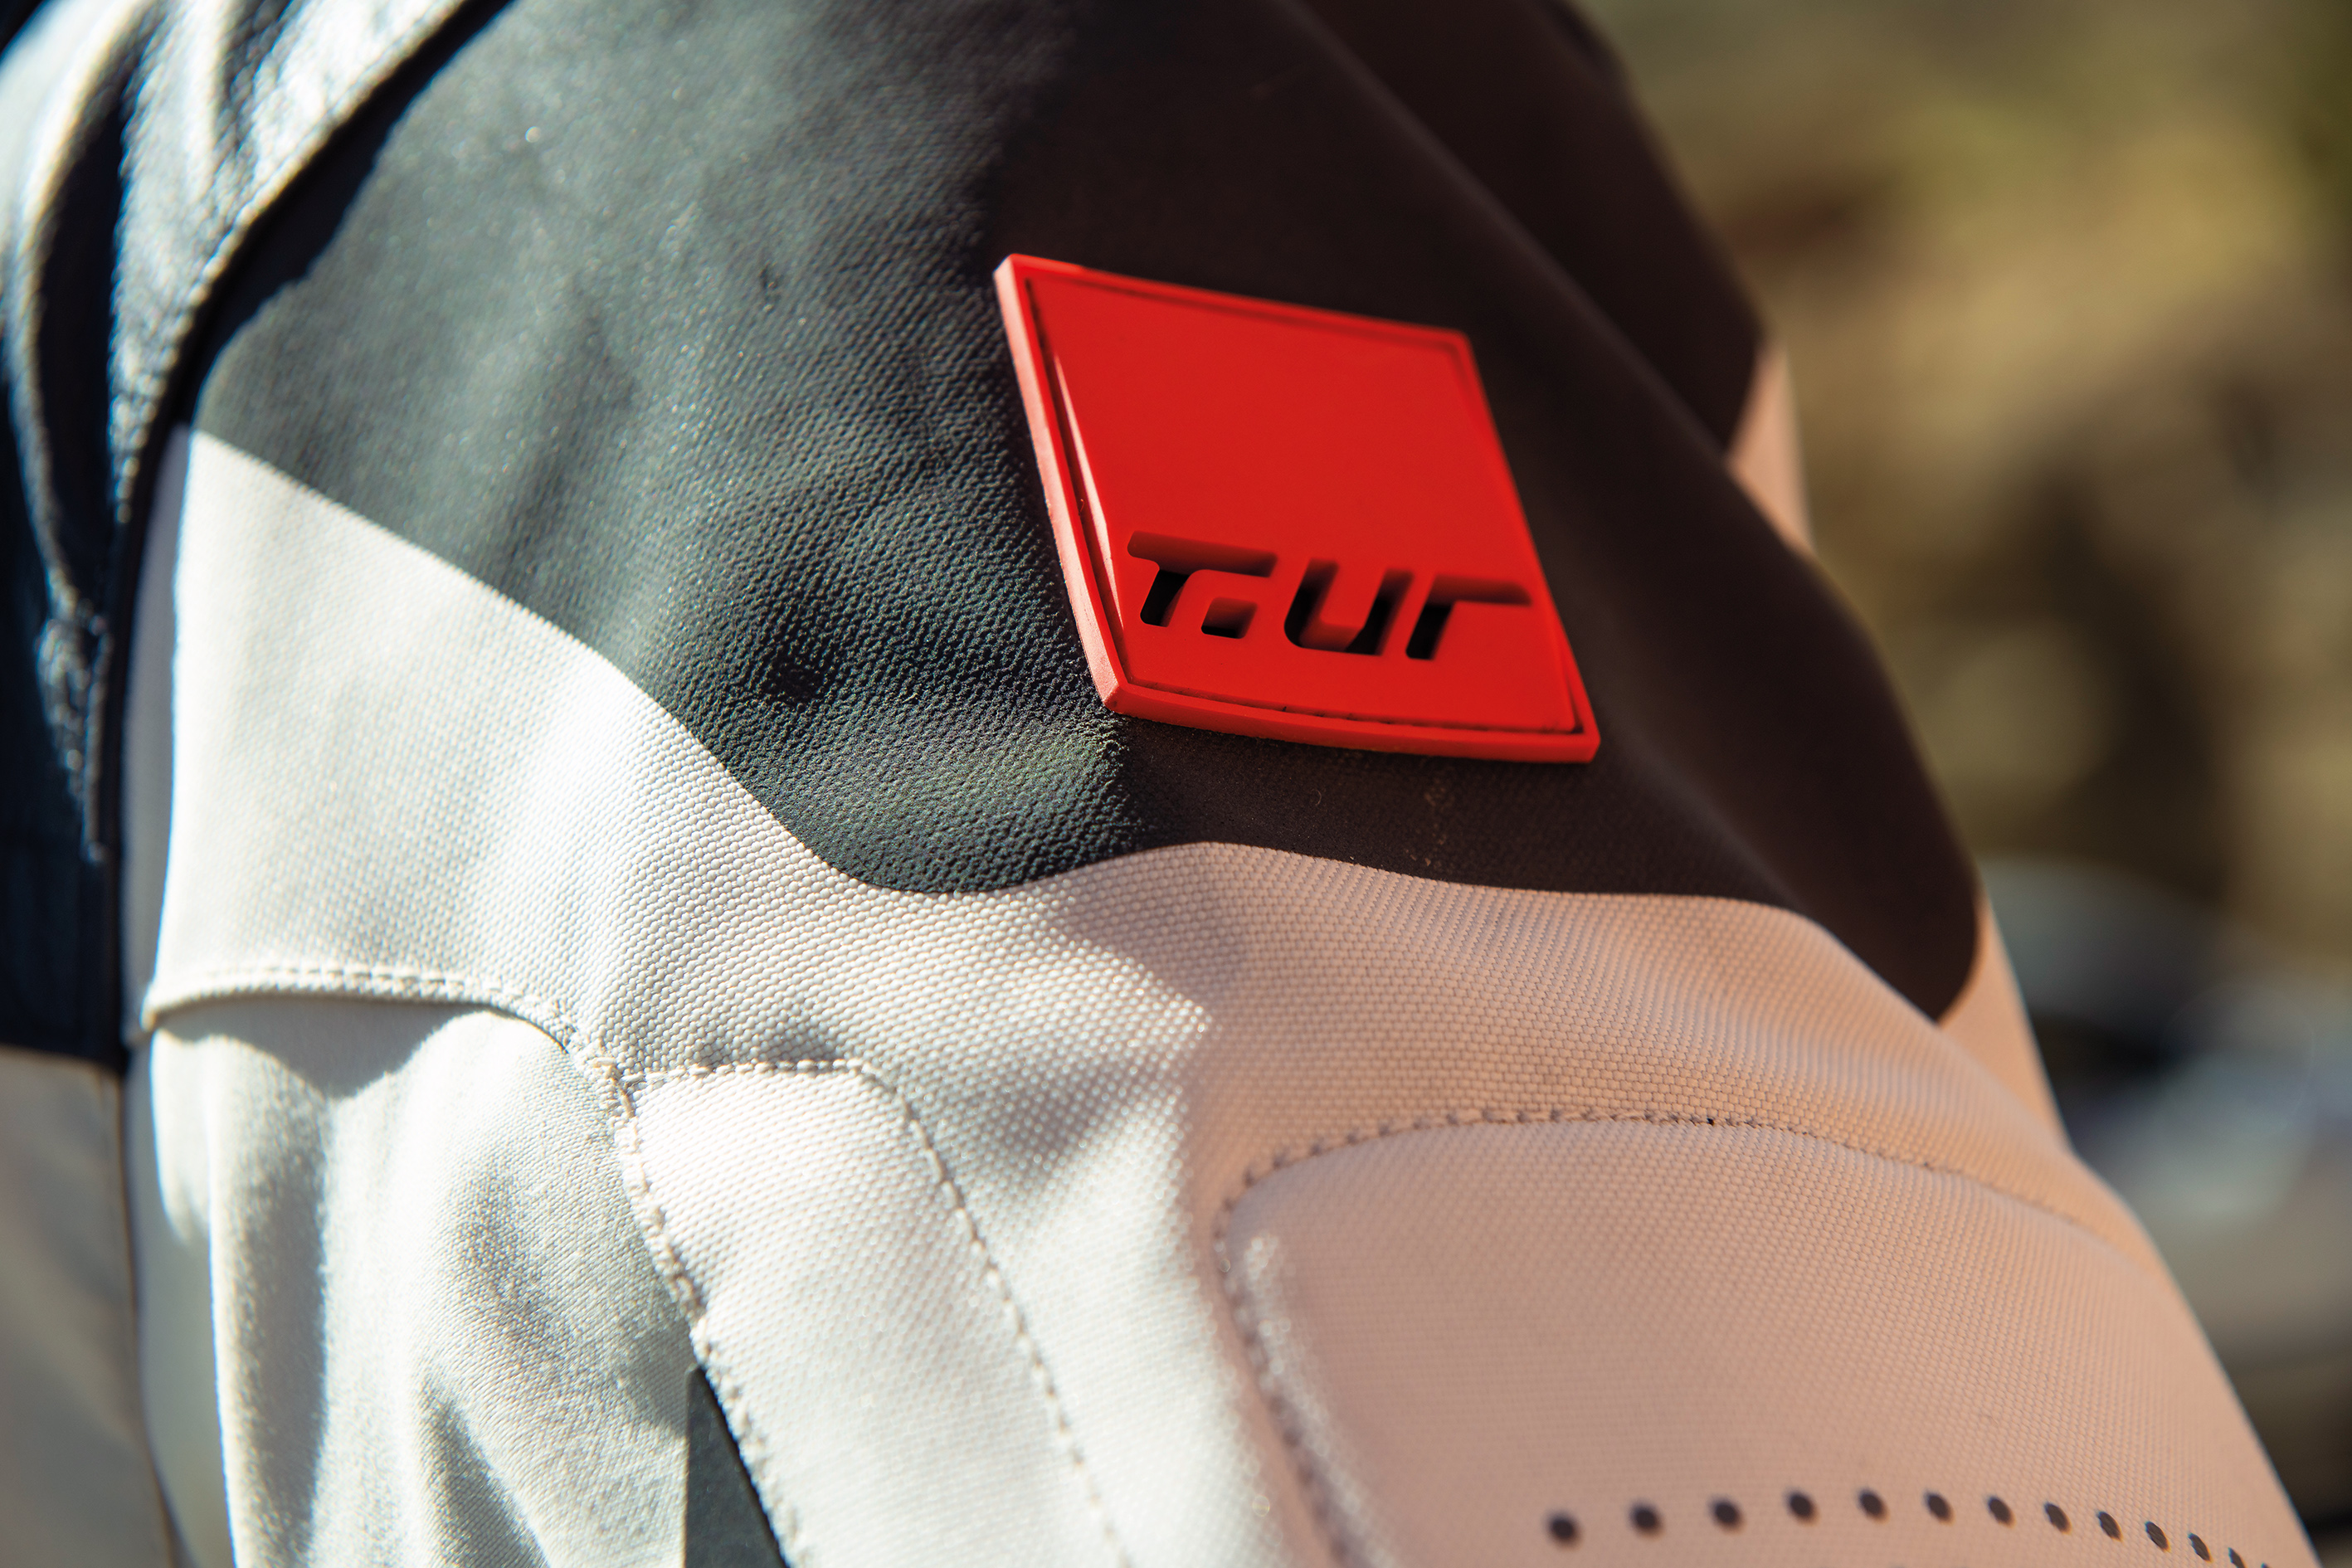 New motorcycle clothing brand called T.ur